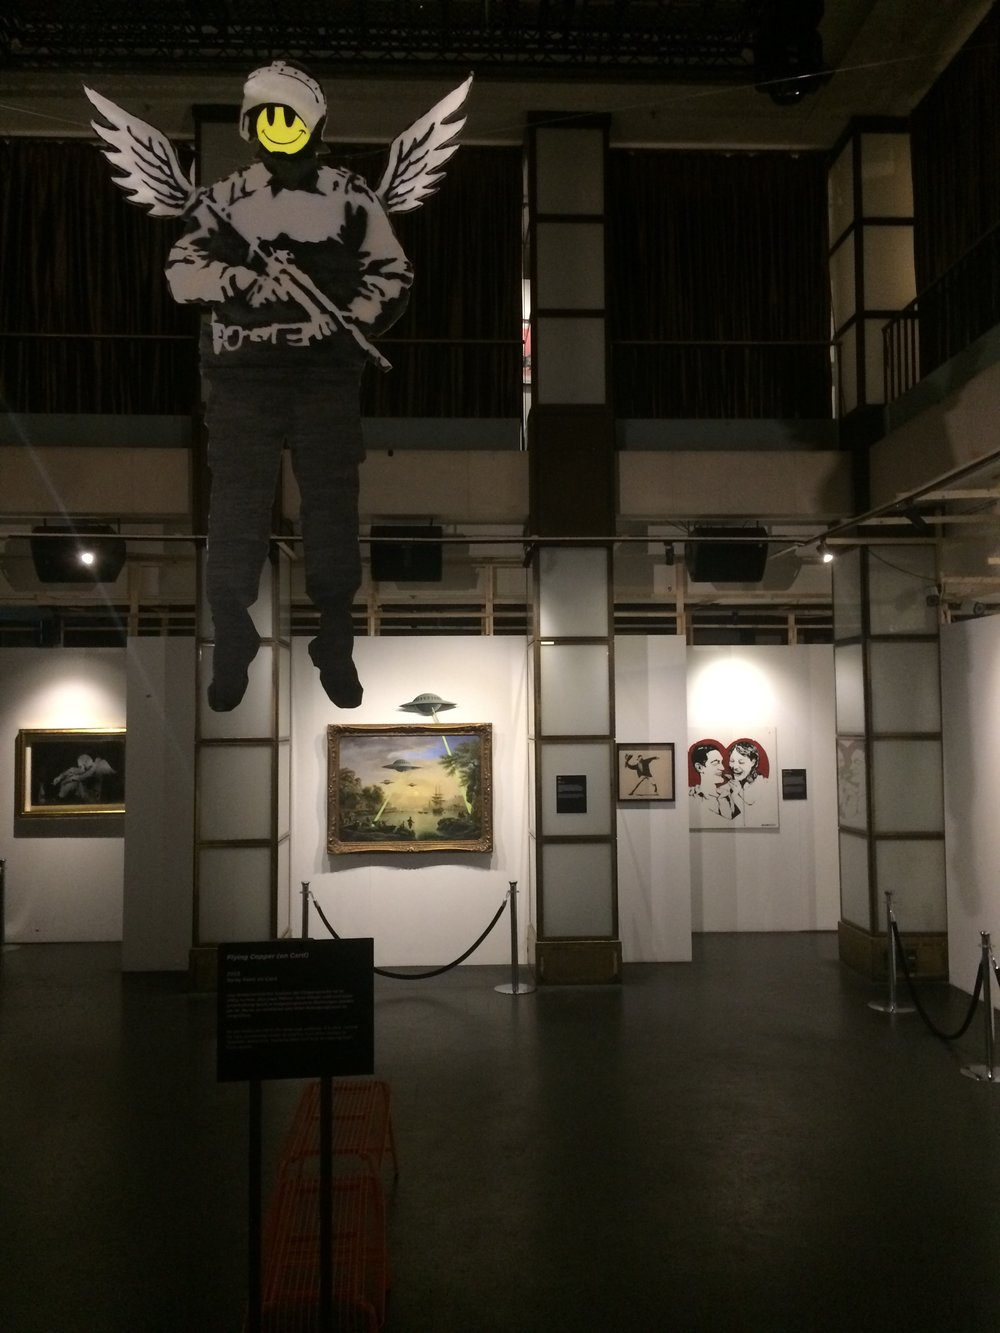 The-art-of-banksy-exhibition